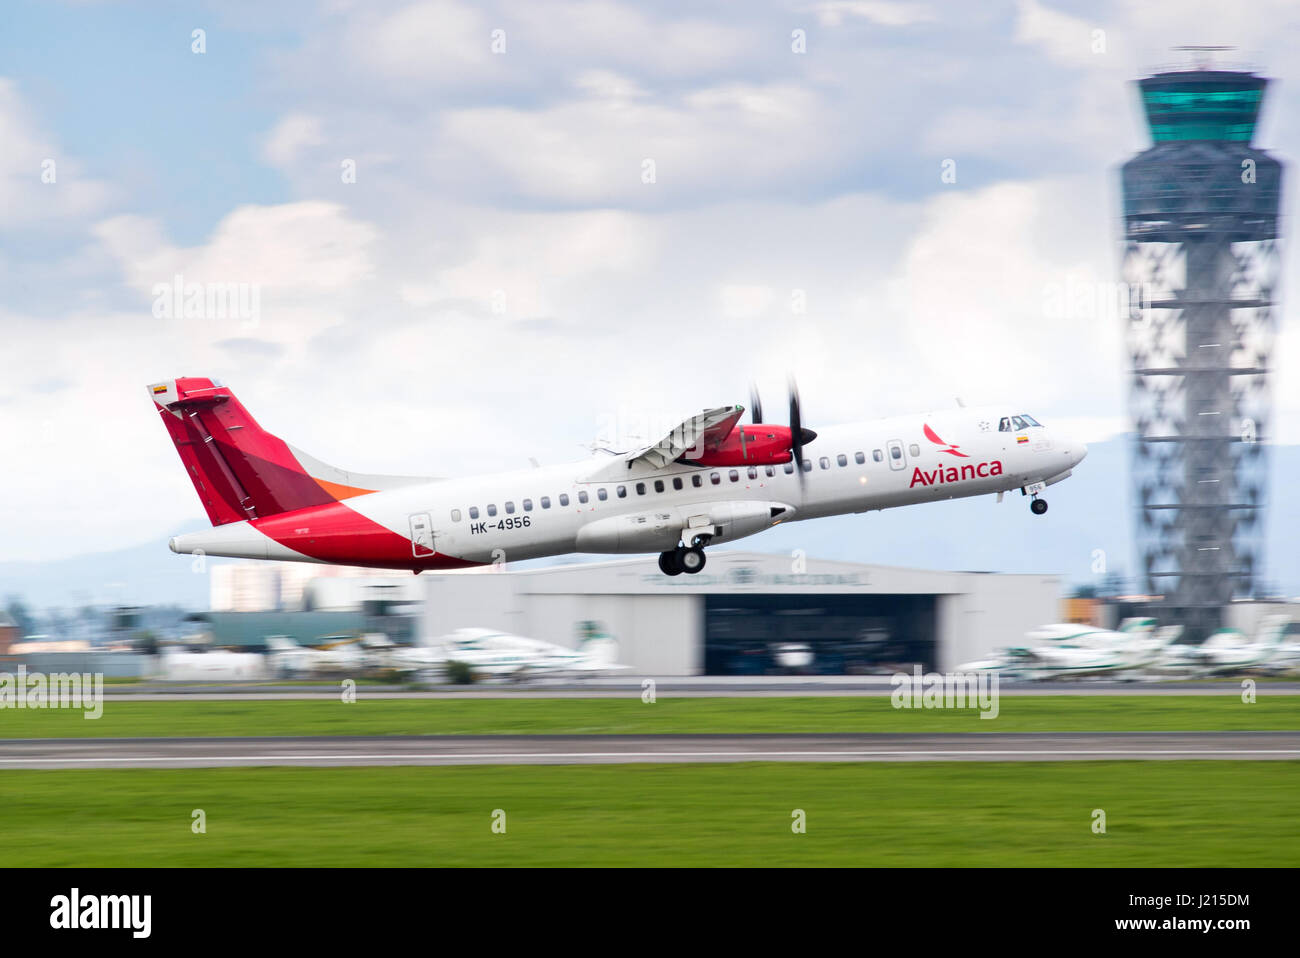 An ATR 72-600 turboprop flown by Colombia's Avianca lifts off from the runway at El Dorado International Airport, - Stock Image